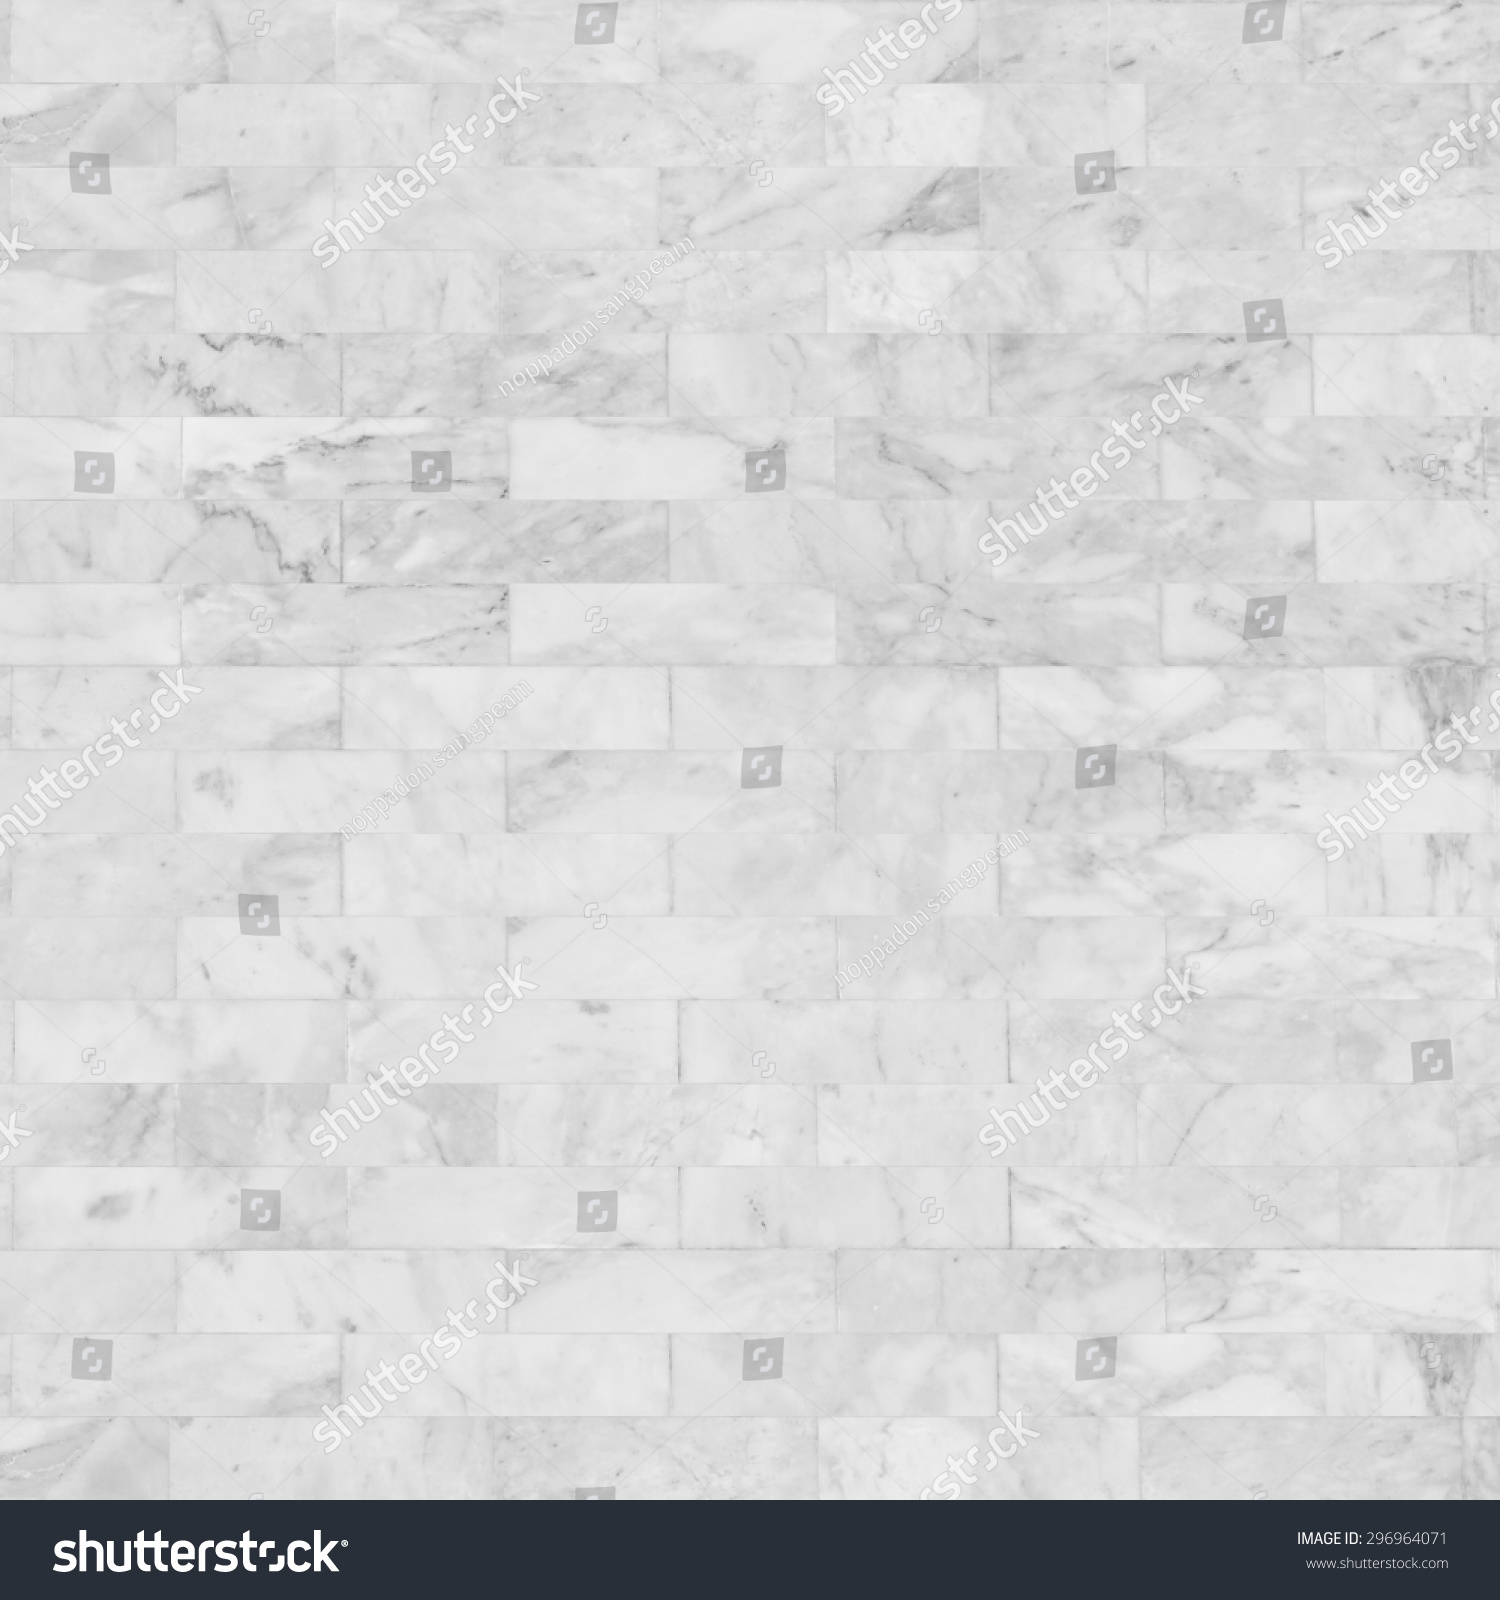 Marble Tiles Seamless Flooring Brick Wall Texture Patterned For Background And Design